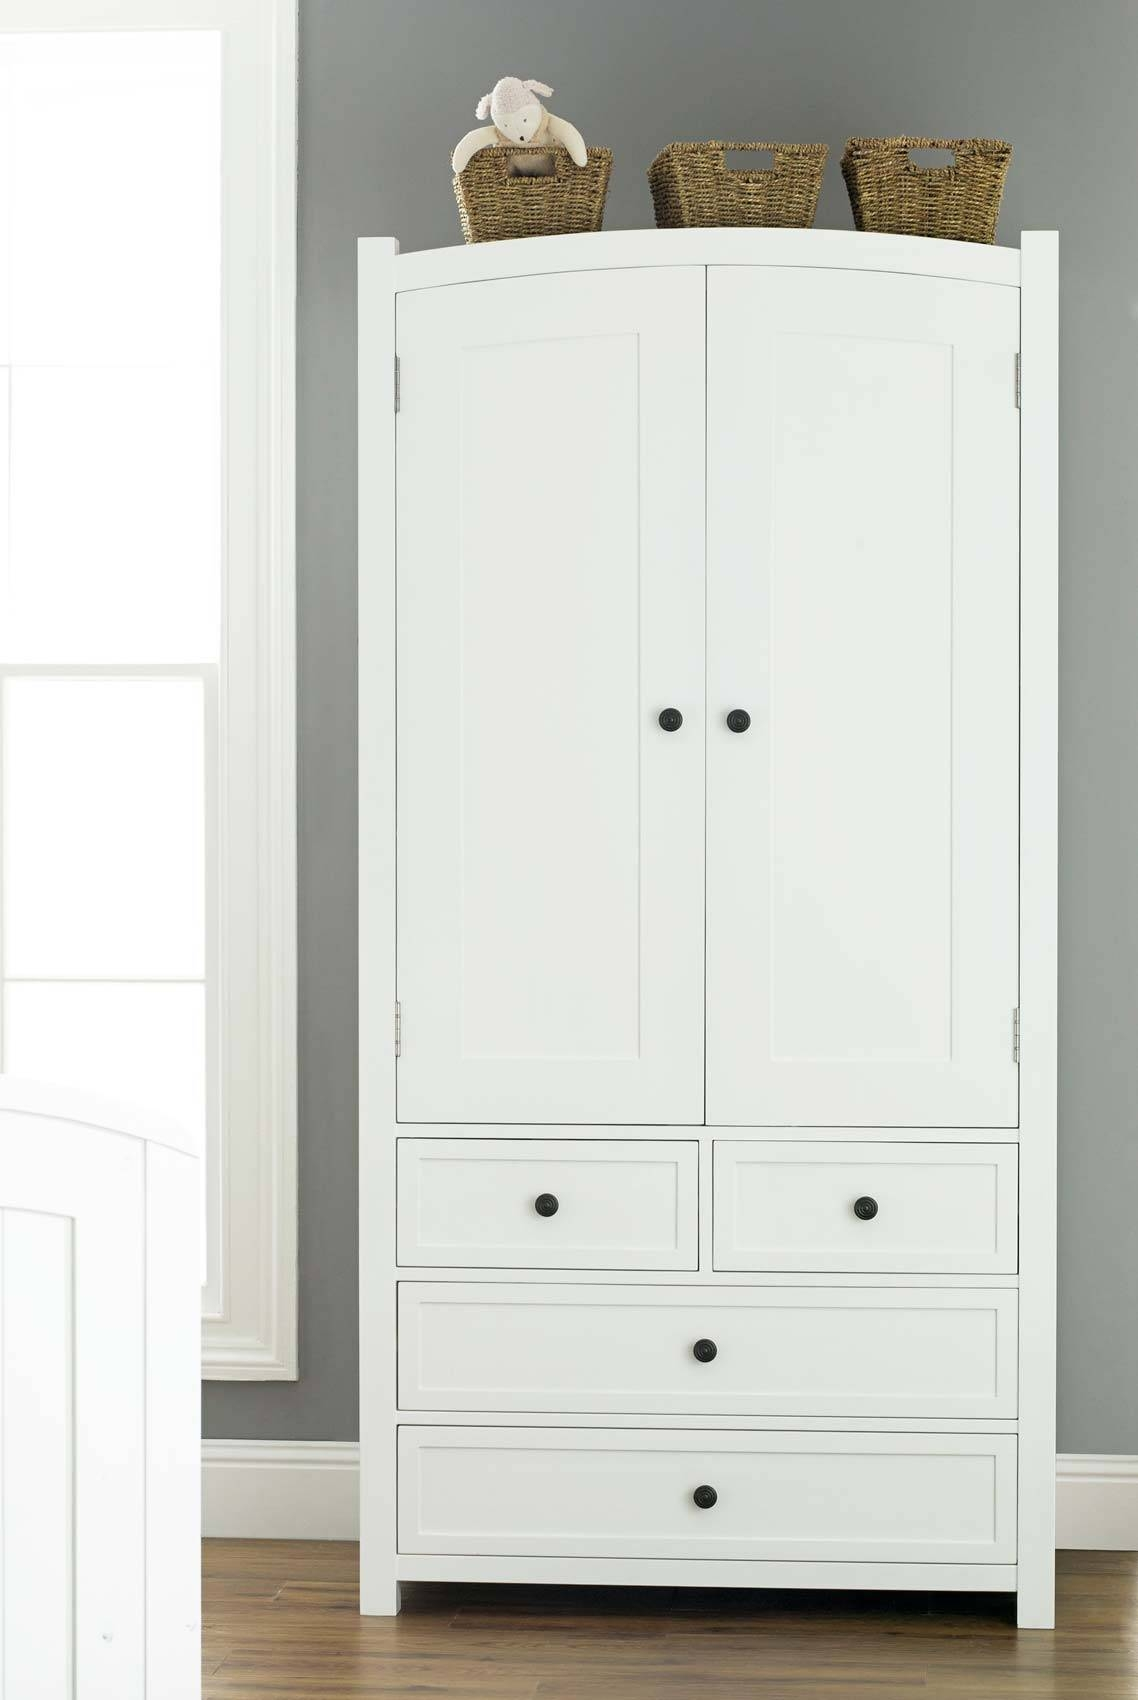 Flawless White Wooden Kids Wardrobe With Drawers And Brown Wicker intended for White Wicker Wardrobes (Image 8 of 15)